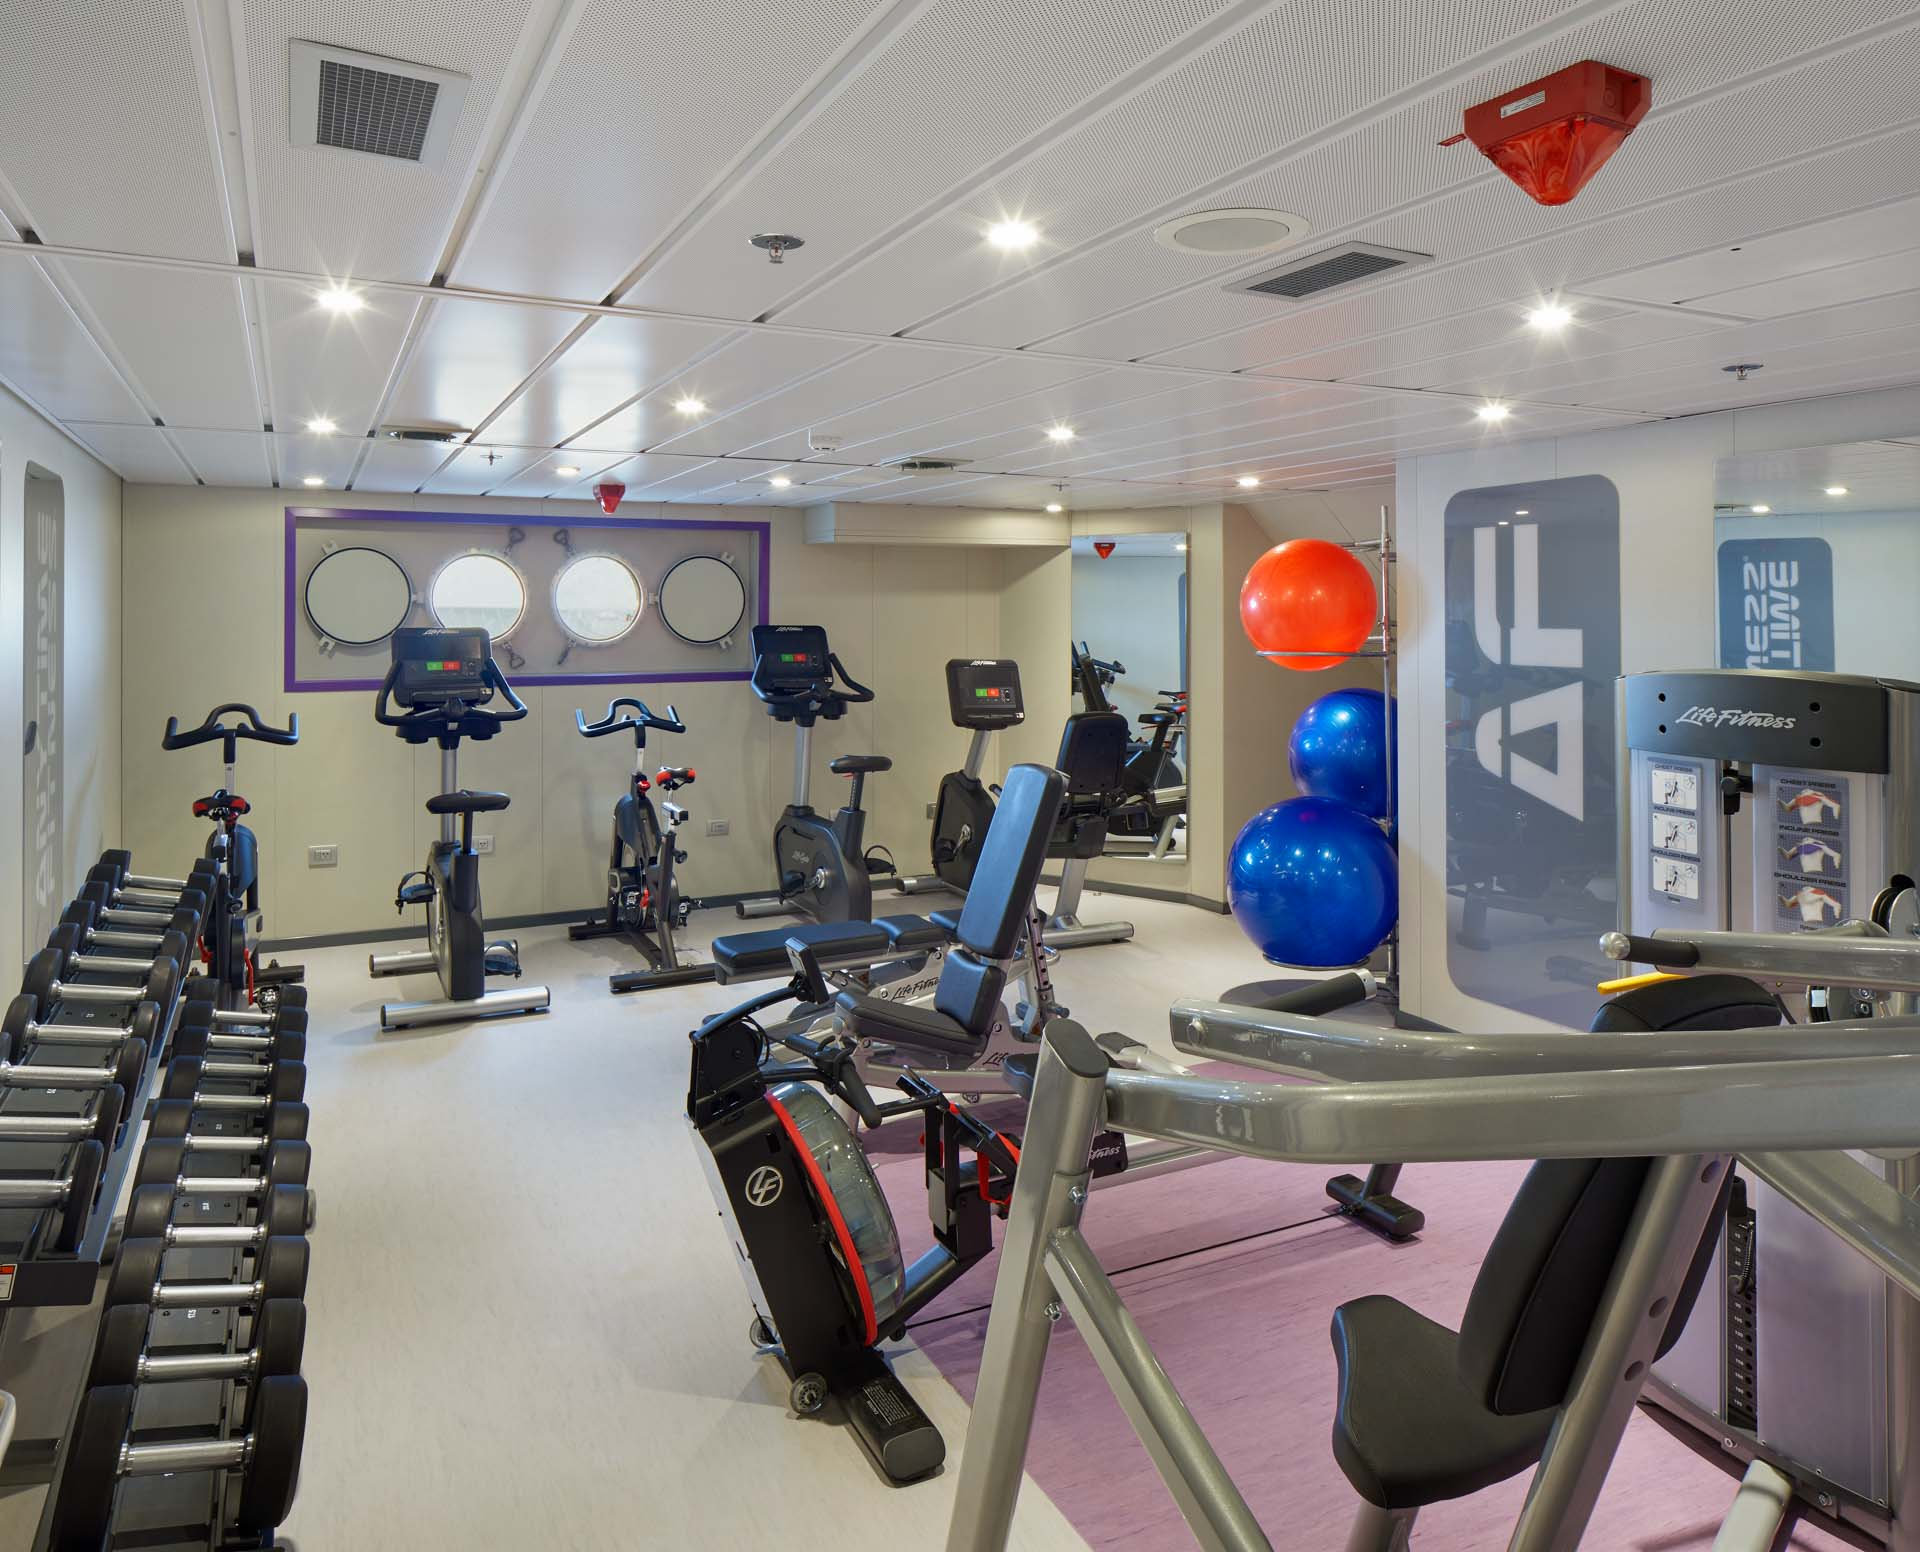 Anytime Fitness gym on board Magellan Explorer, photography by Tom Arban.